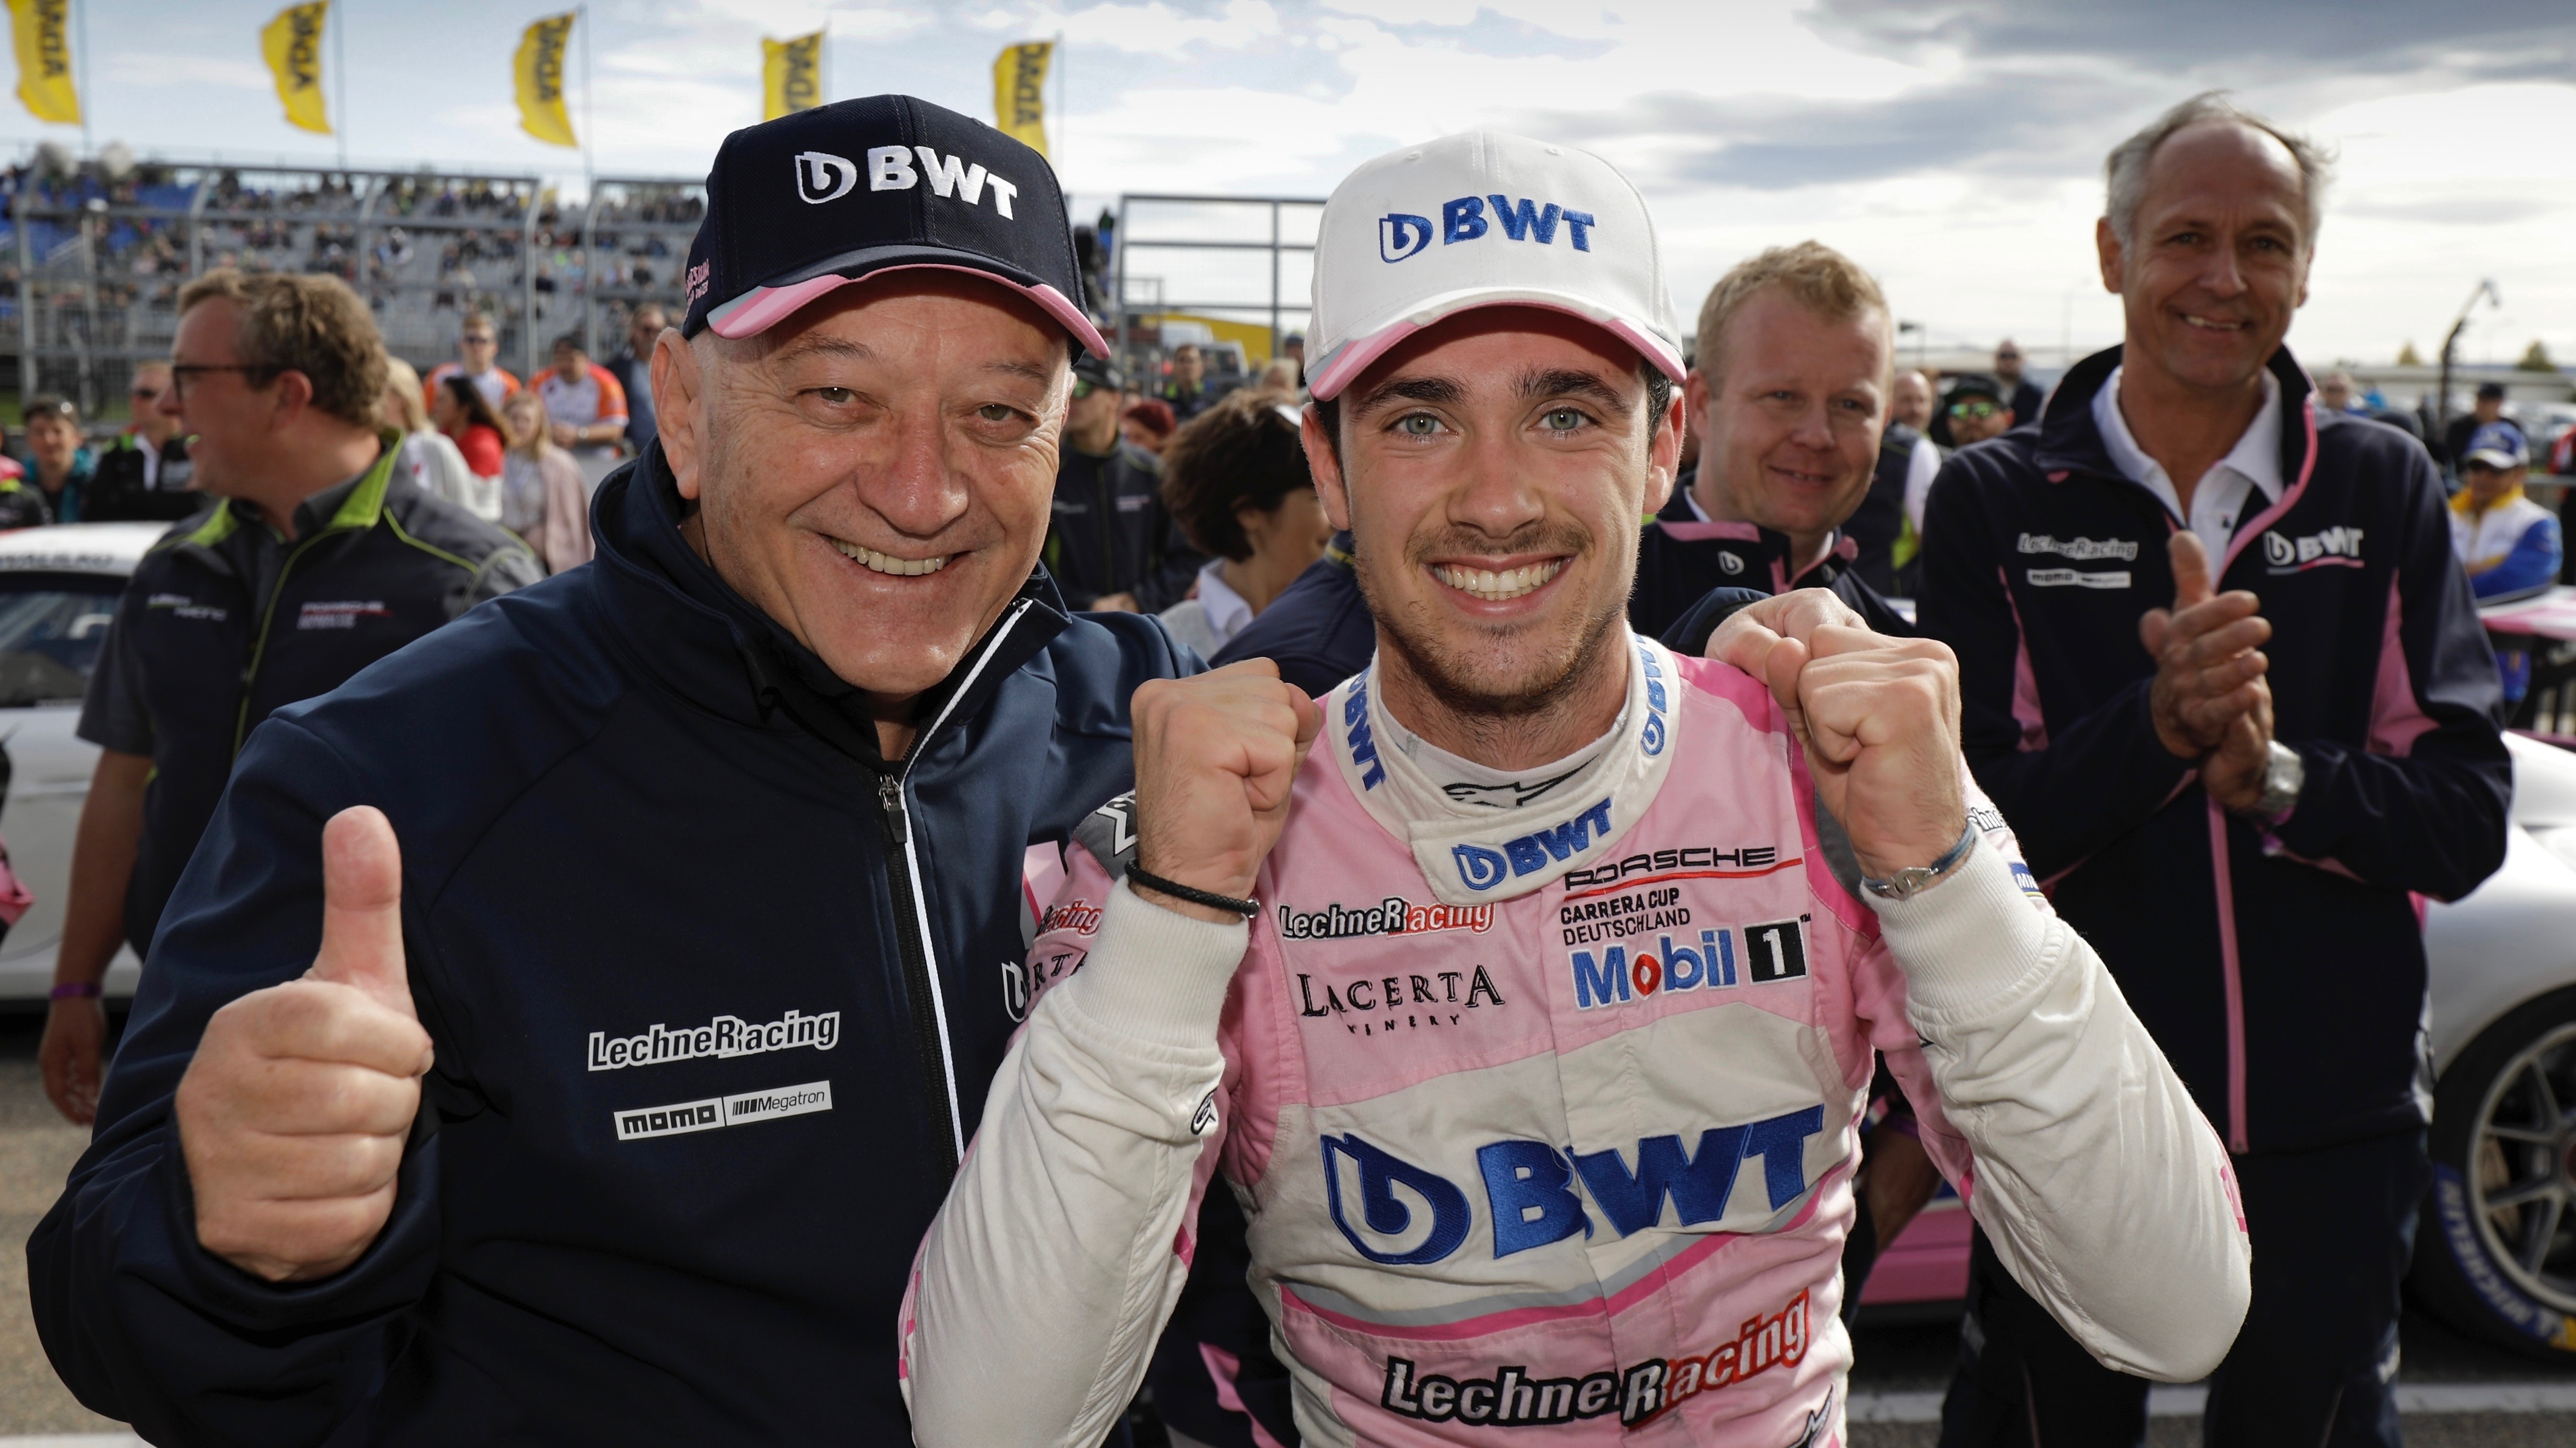 Walter Lechner, BWT Lechner Racing, Julien Andlauer, Winner of the Porsche Carrera Cup Deutschland, l-r, 2019, Porsche AG